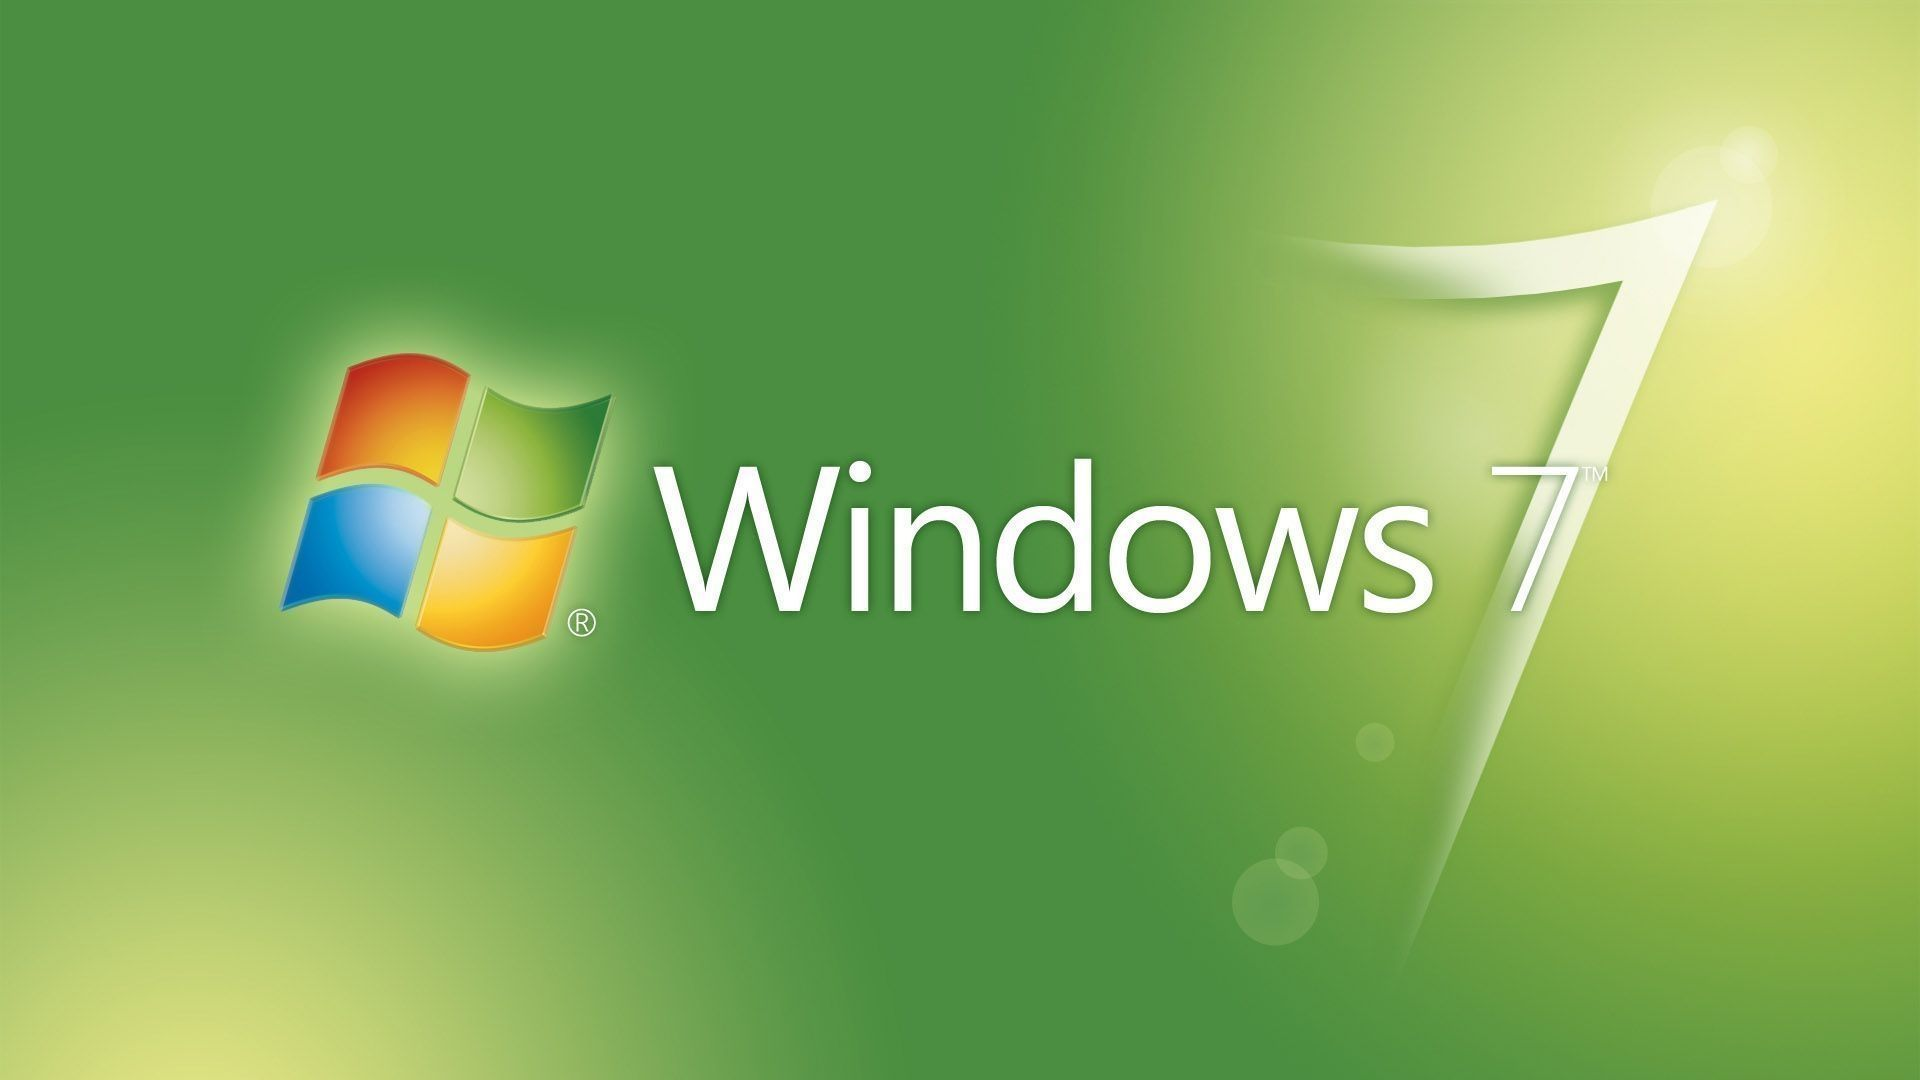 Windows 7 Ultimate Desktop Wallpaper